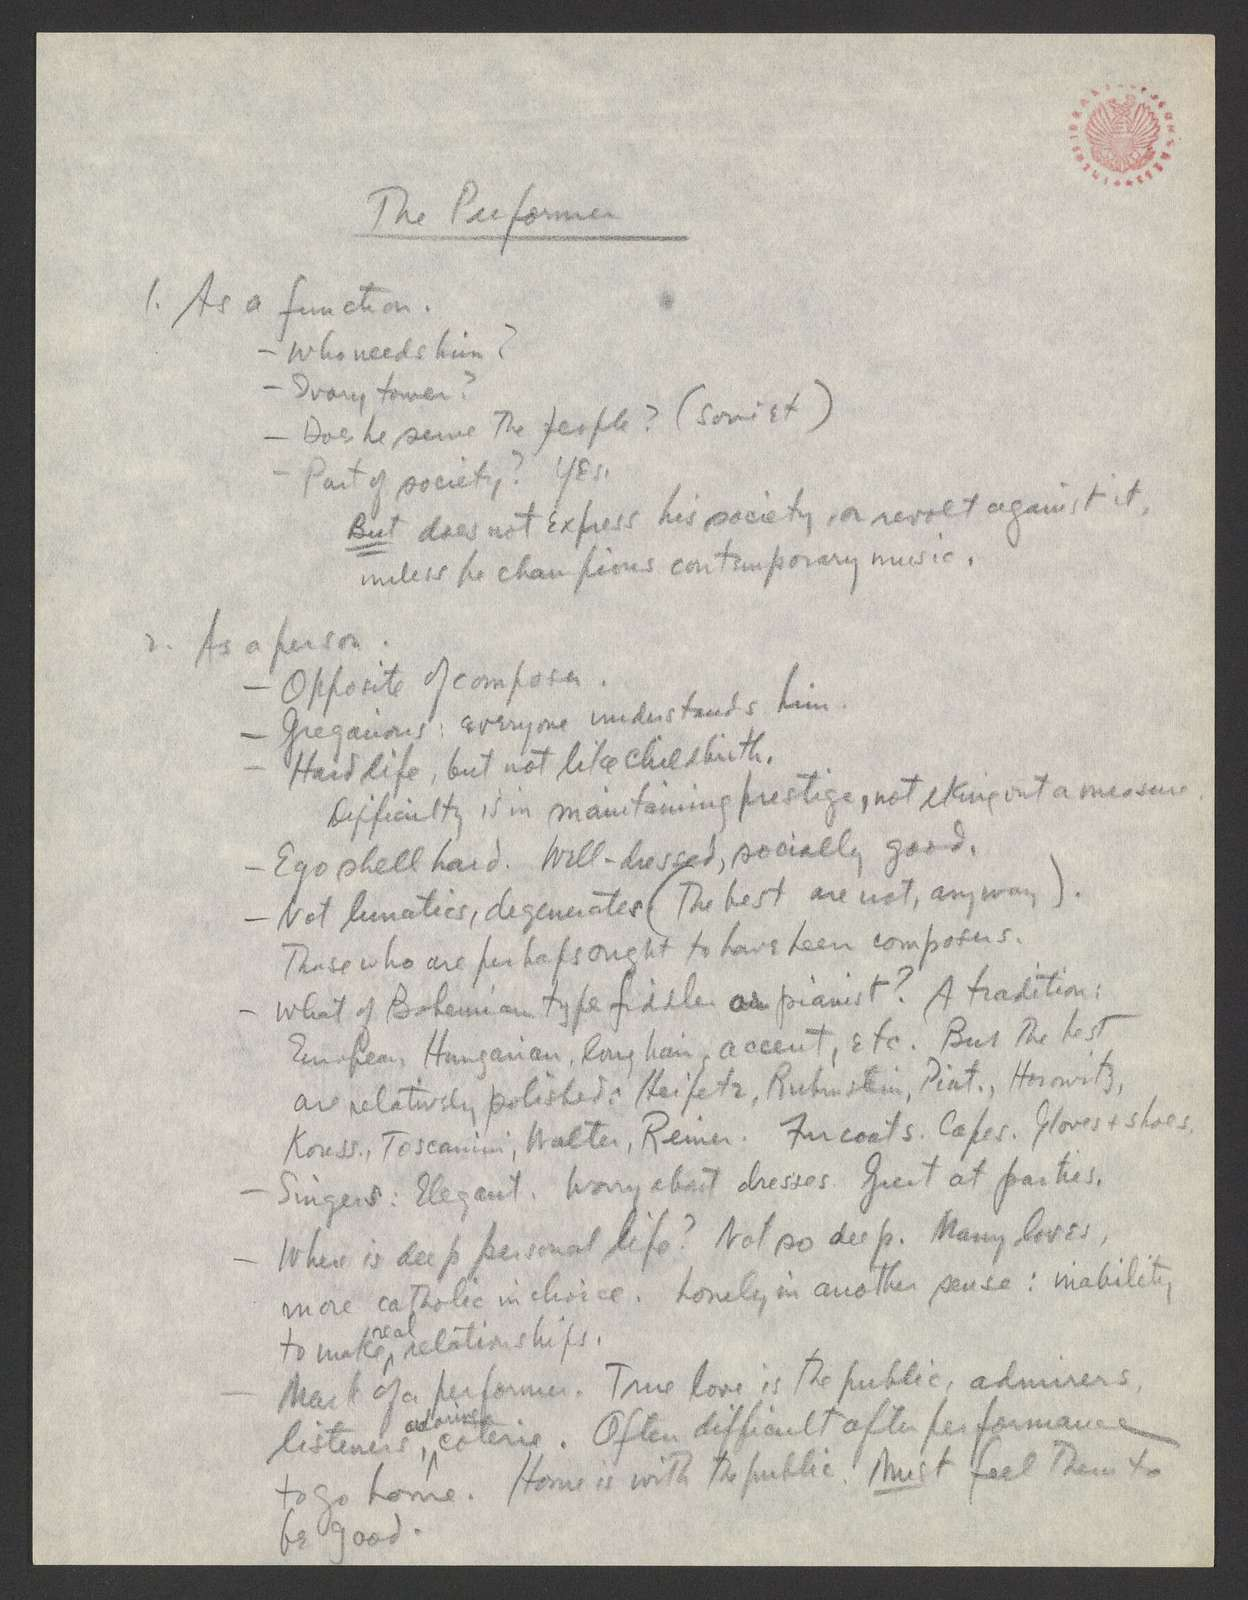 The composer and the performer lecture outline, Brandeis University, 1952 May 20